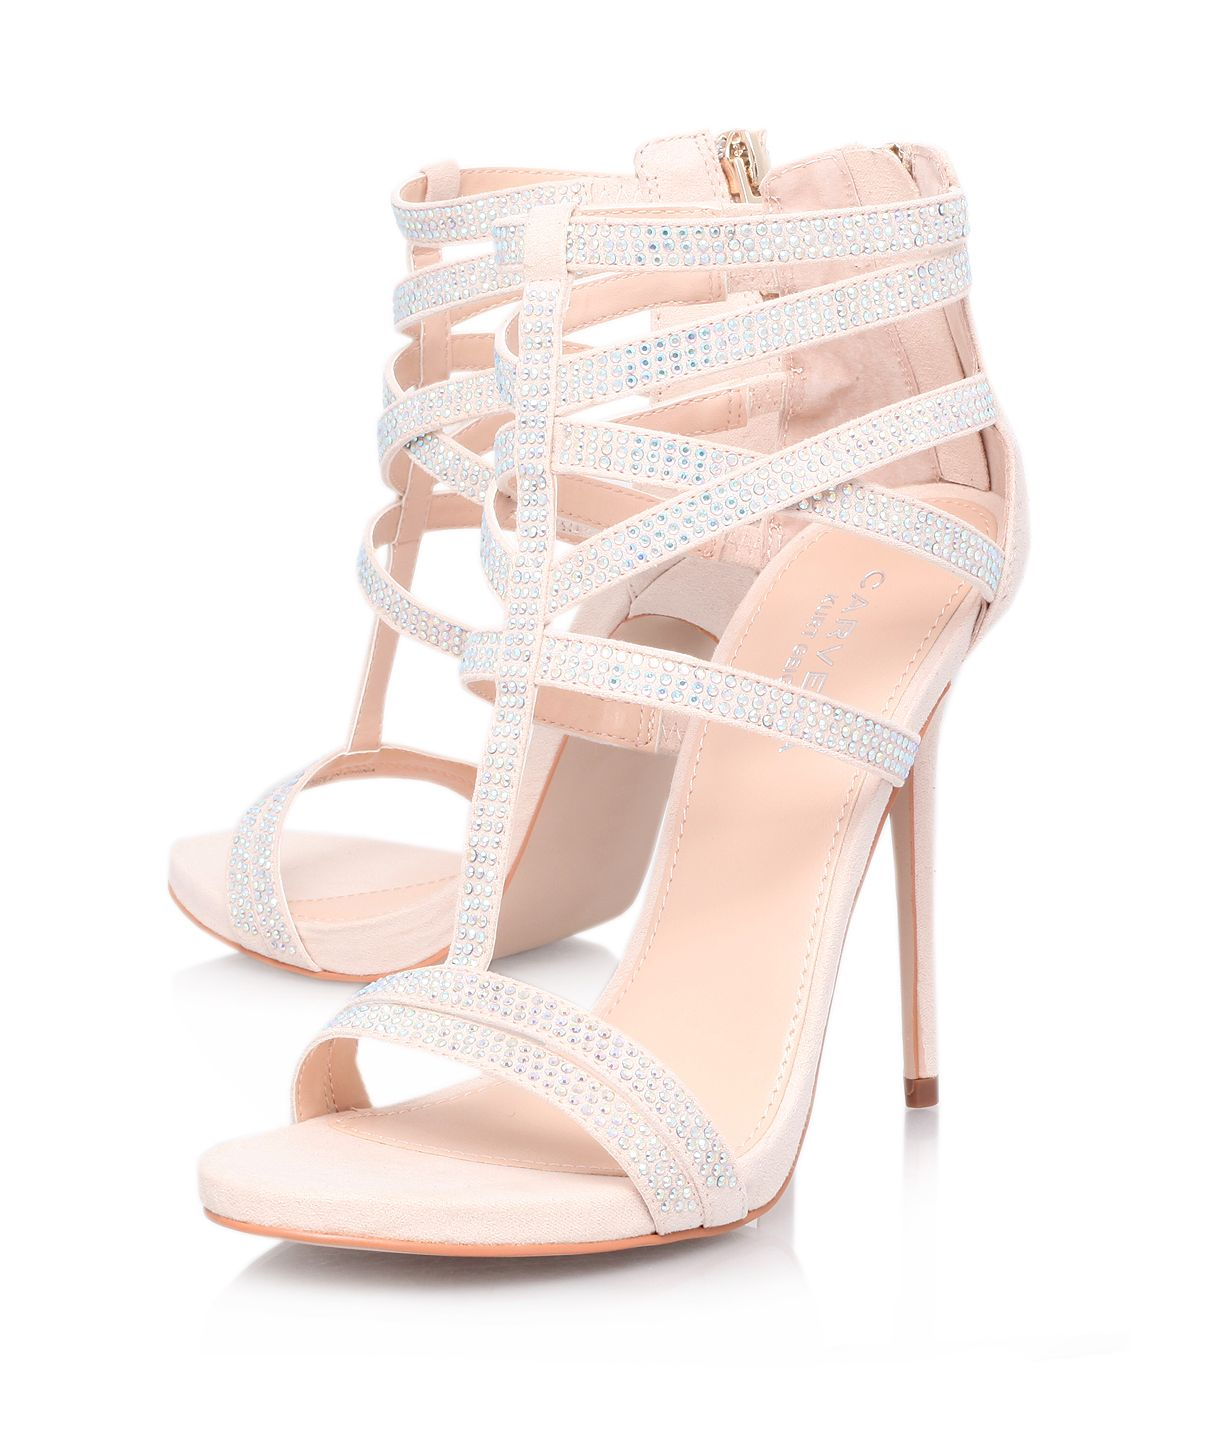 Glaze high heel sandals